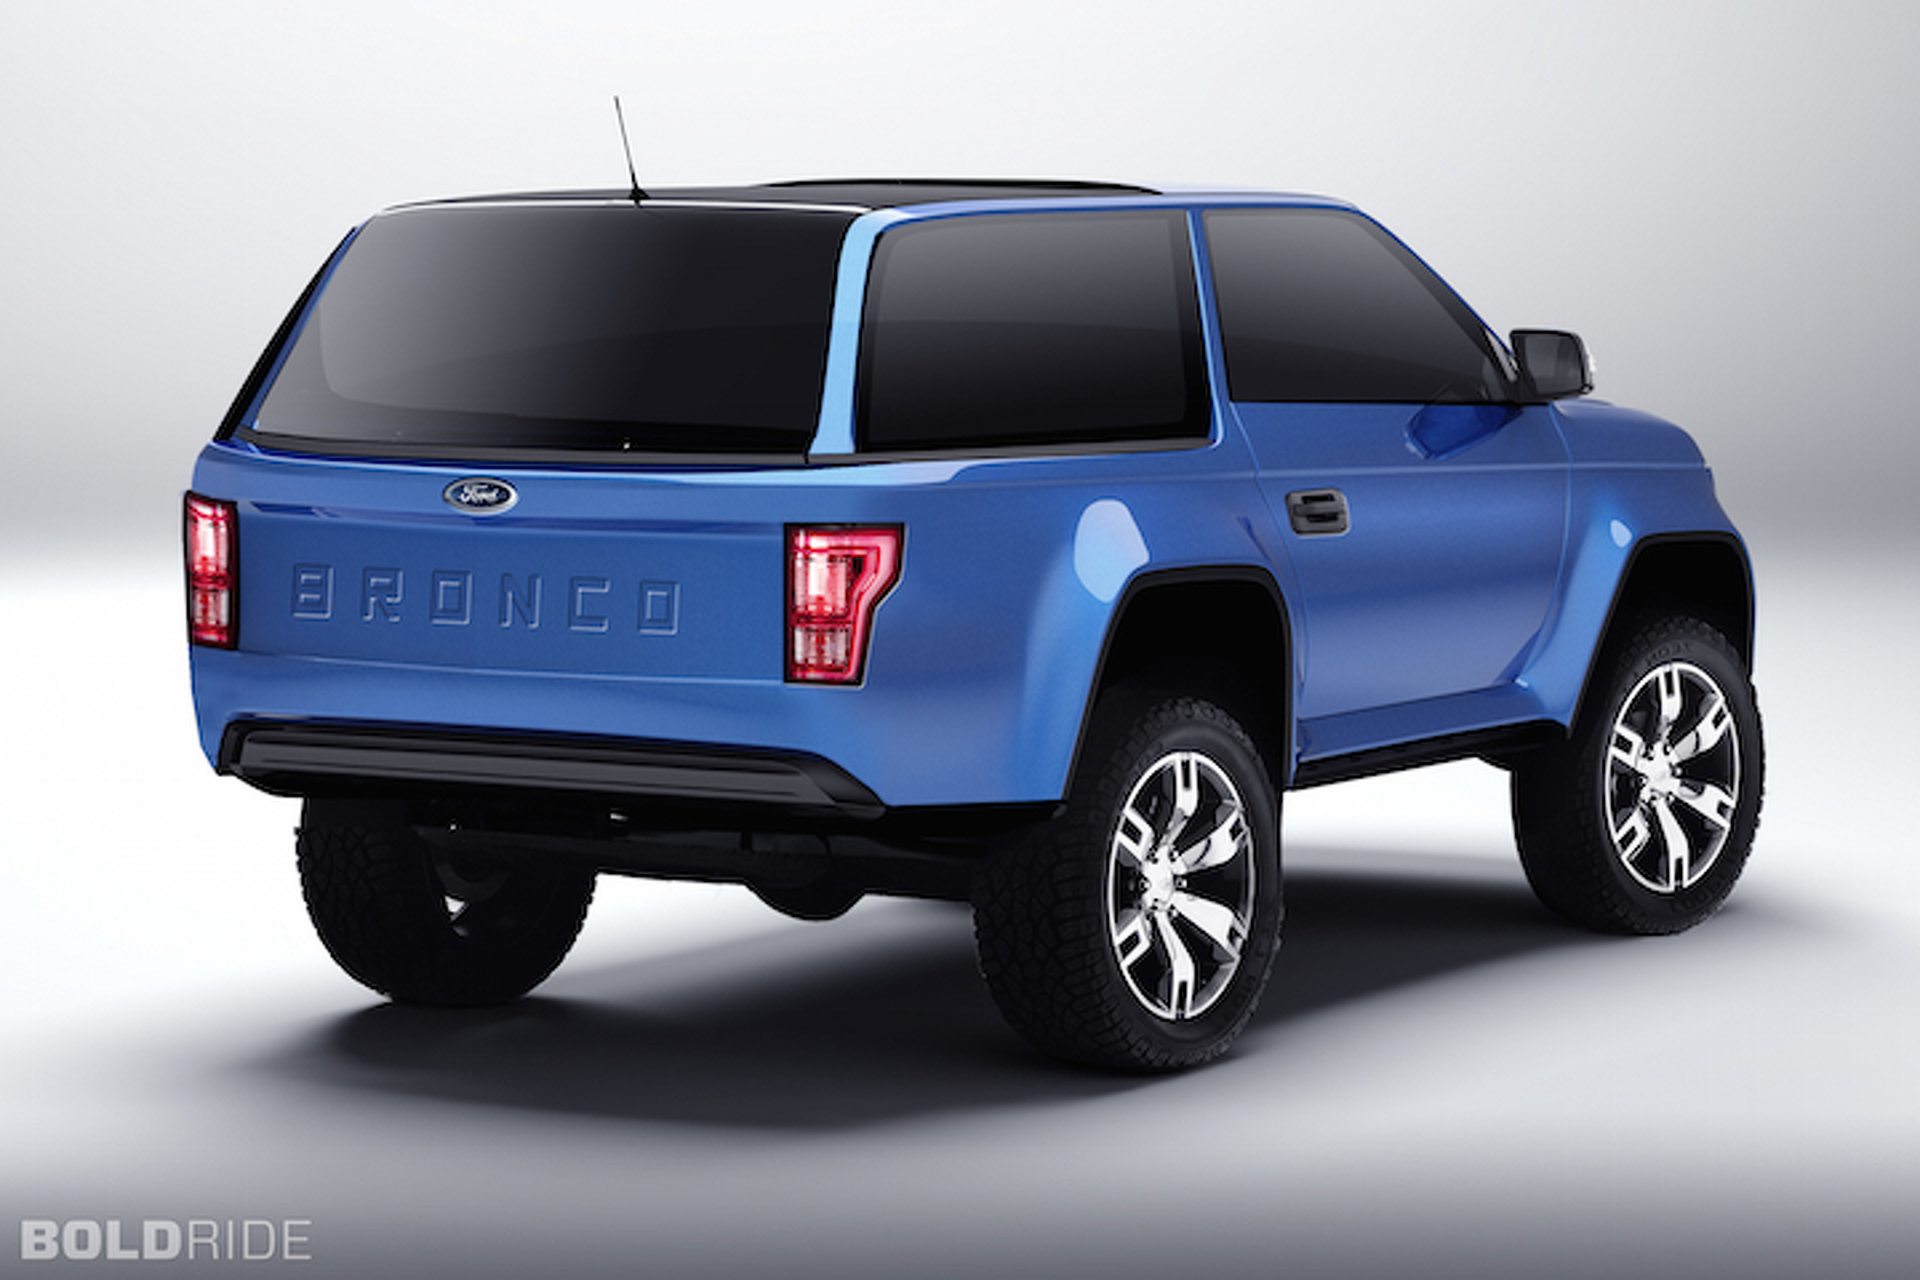 2017 Ford Bronco Related Keywords & Suggestions - 2017 Ford Bronco ...